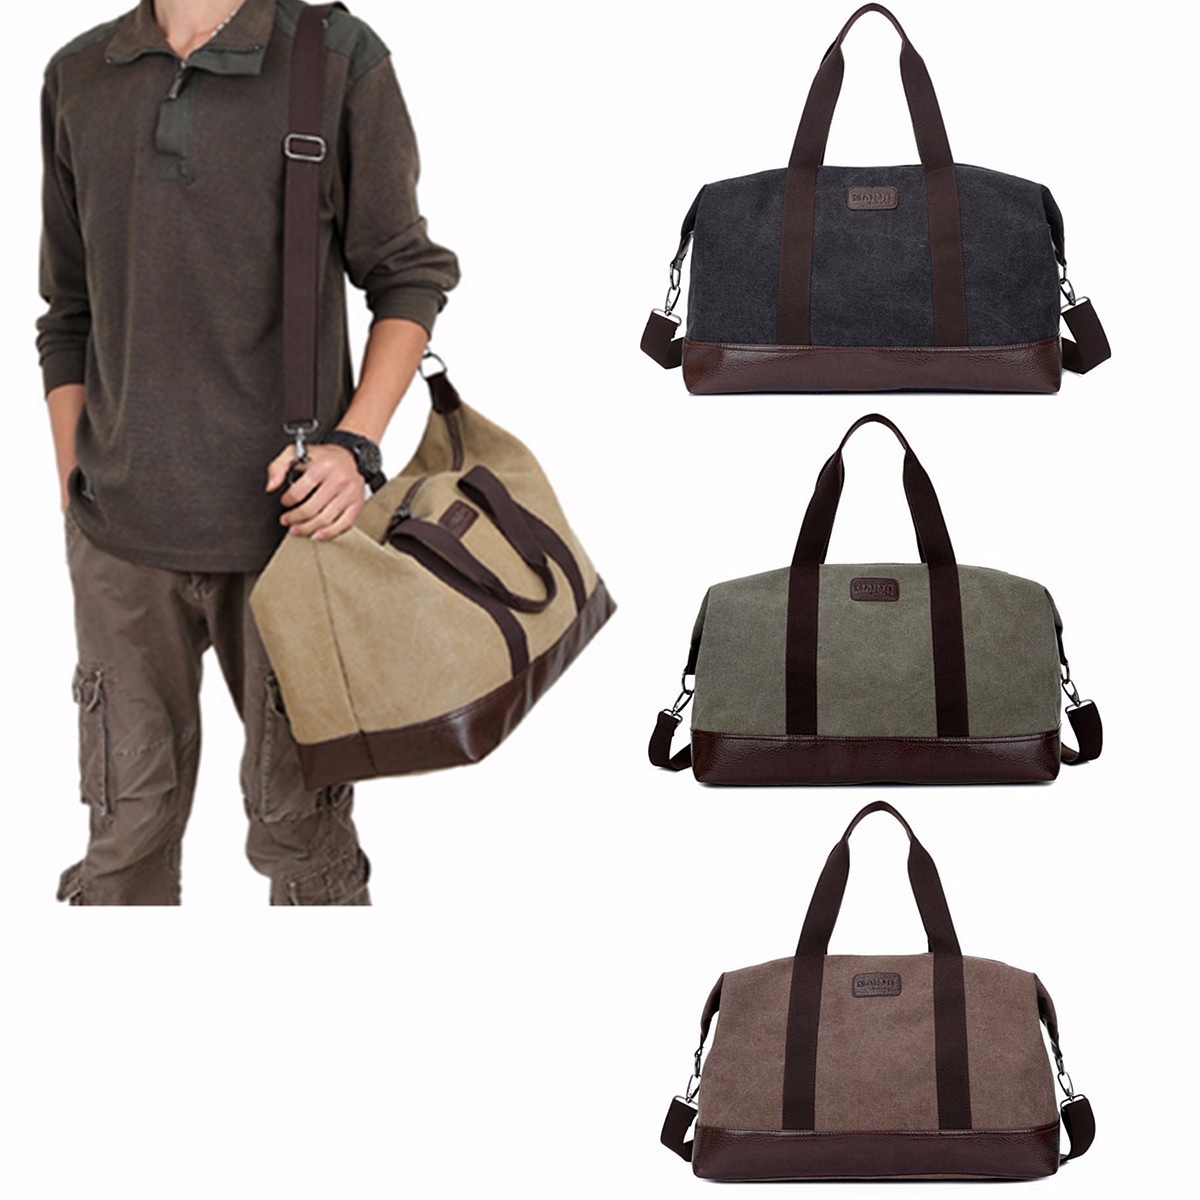 Large Capacity Canvas Travel Bags Casual Men Hand Luggage Travel Duffle Totes Bag Big Male Crossbody Bag Bolsos Waterproof